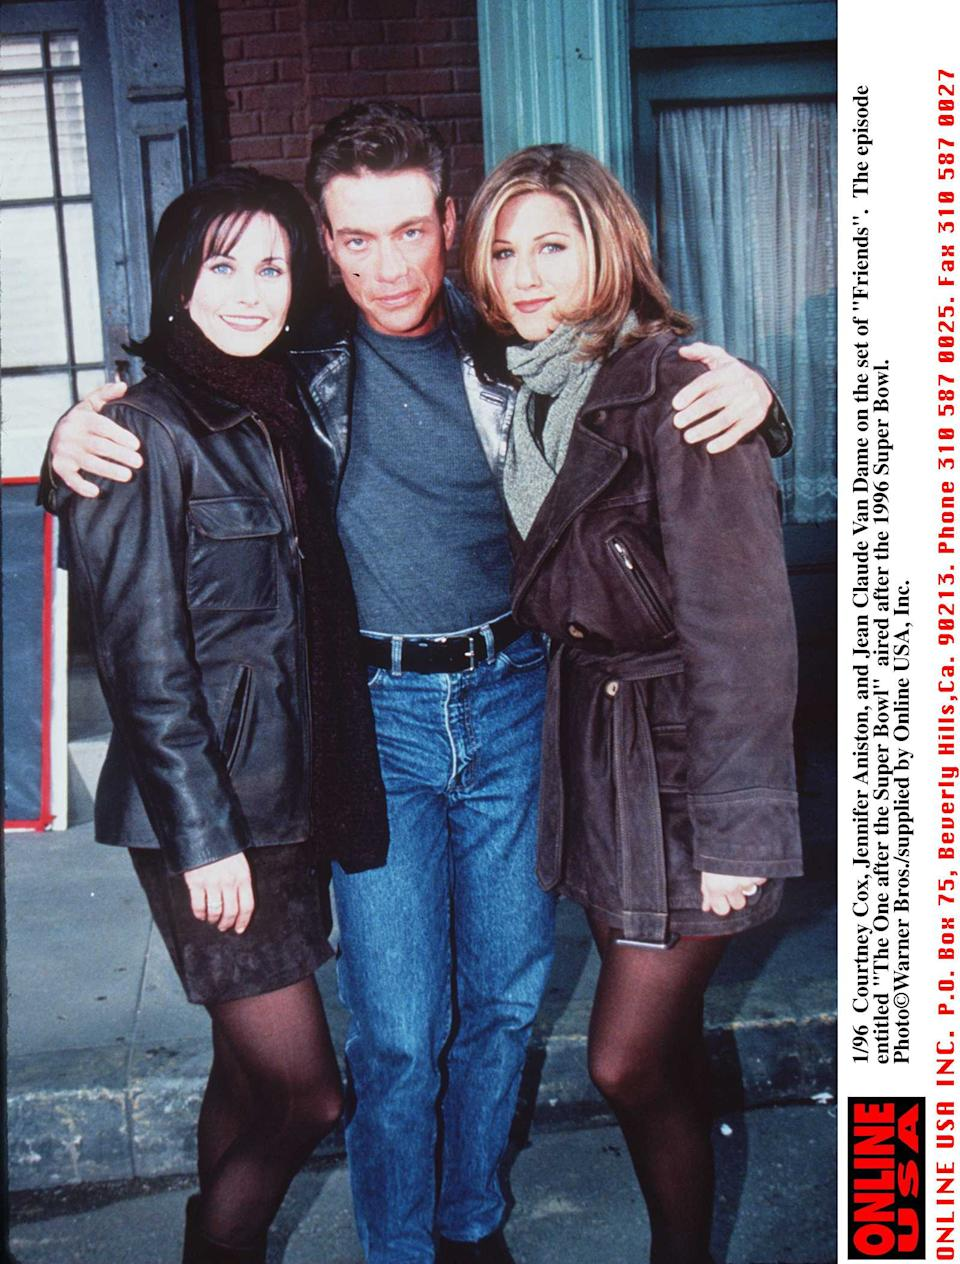 """2/96 Courteney Cox, Jennifer Aniston, and Jean-Claude Van Damme on the set of """"Friends"""" entitled """"The One After the Super-Bowl"""" which actually aired after the superbowl"""